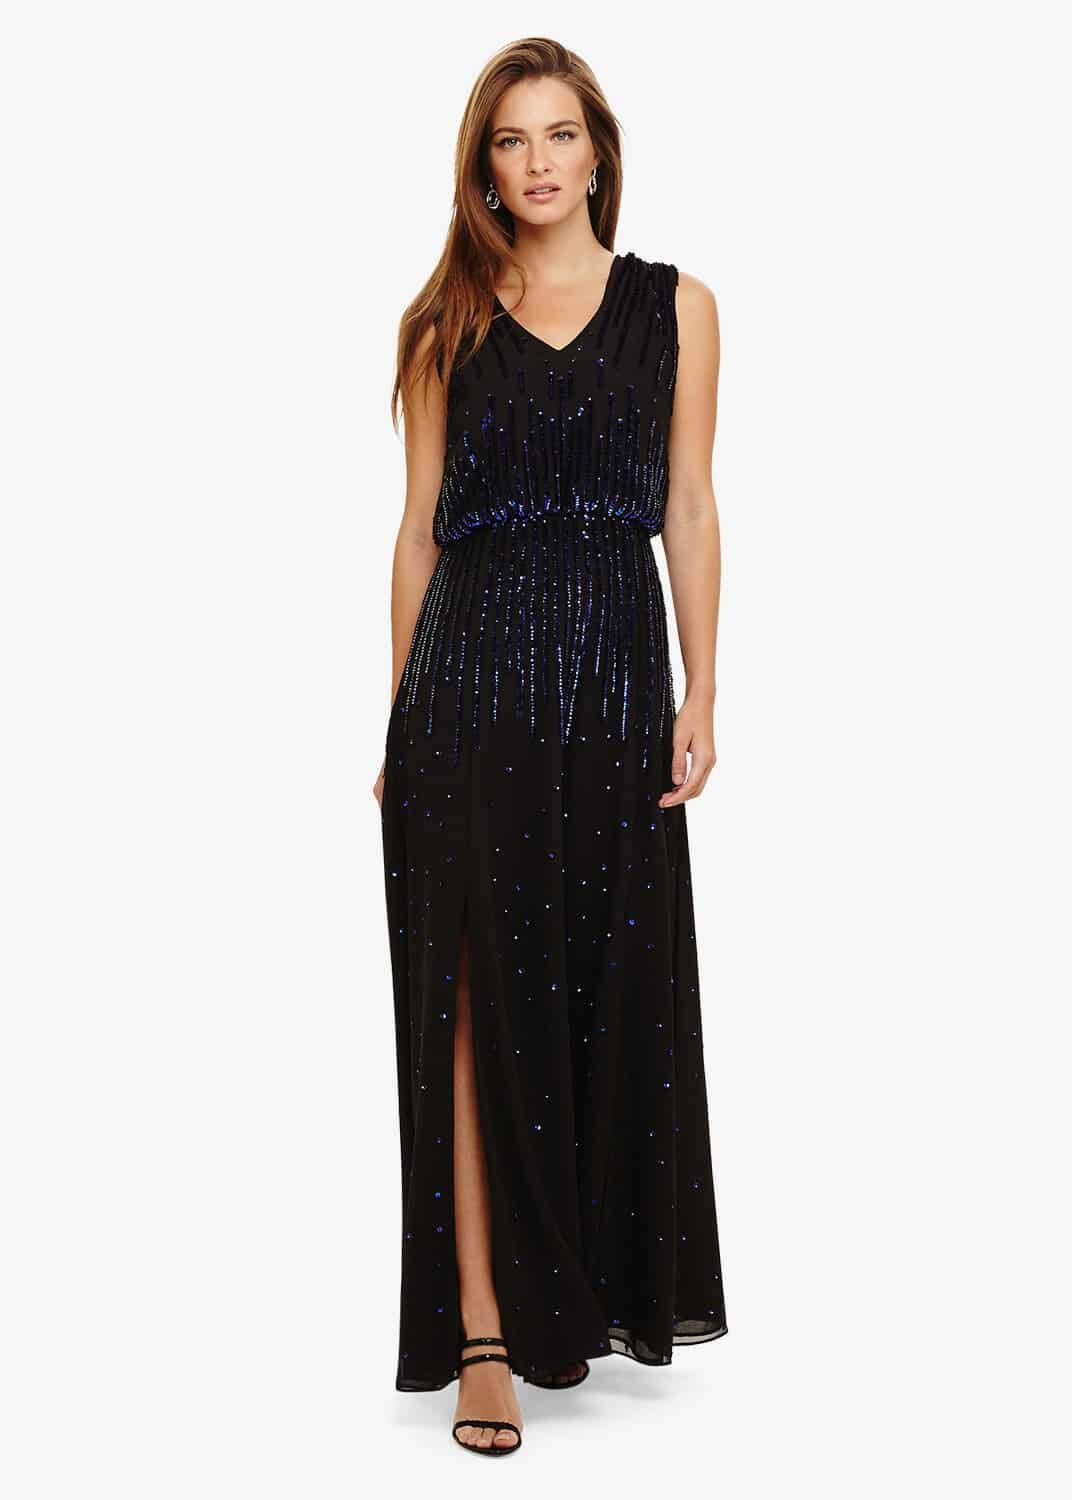 Phase Eight Mia Placement Sequin Dress, Black, Maxi